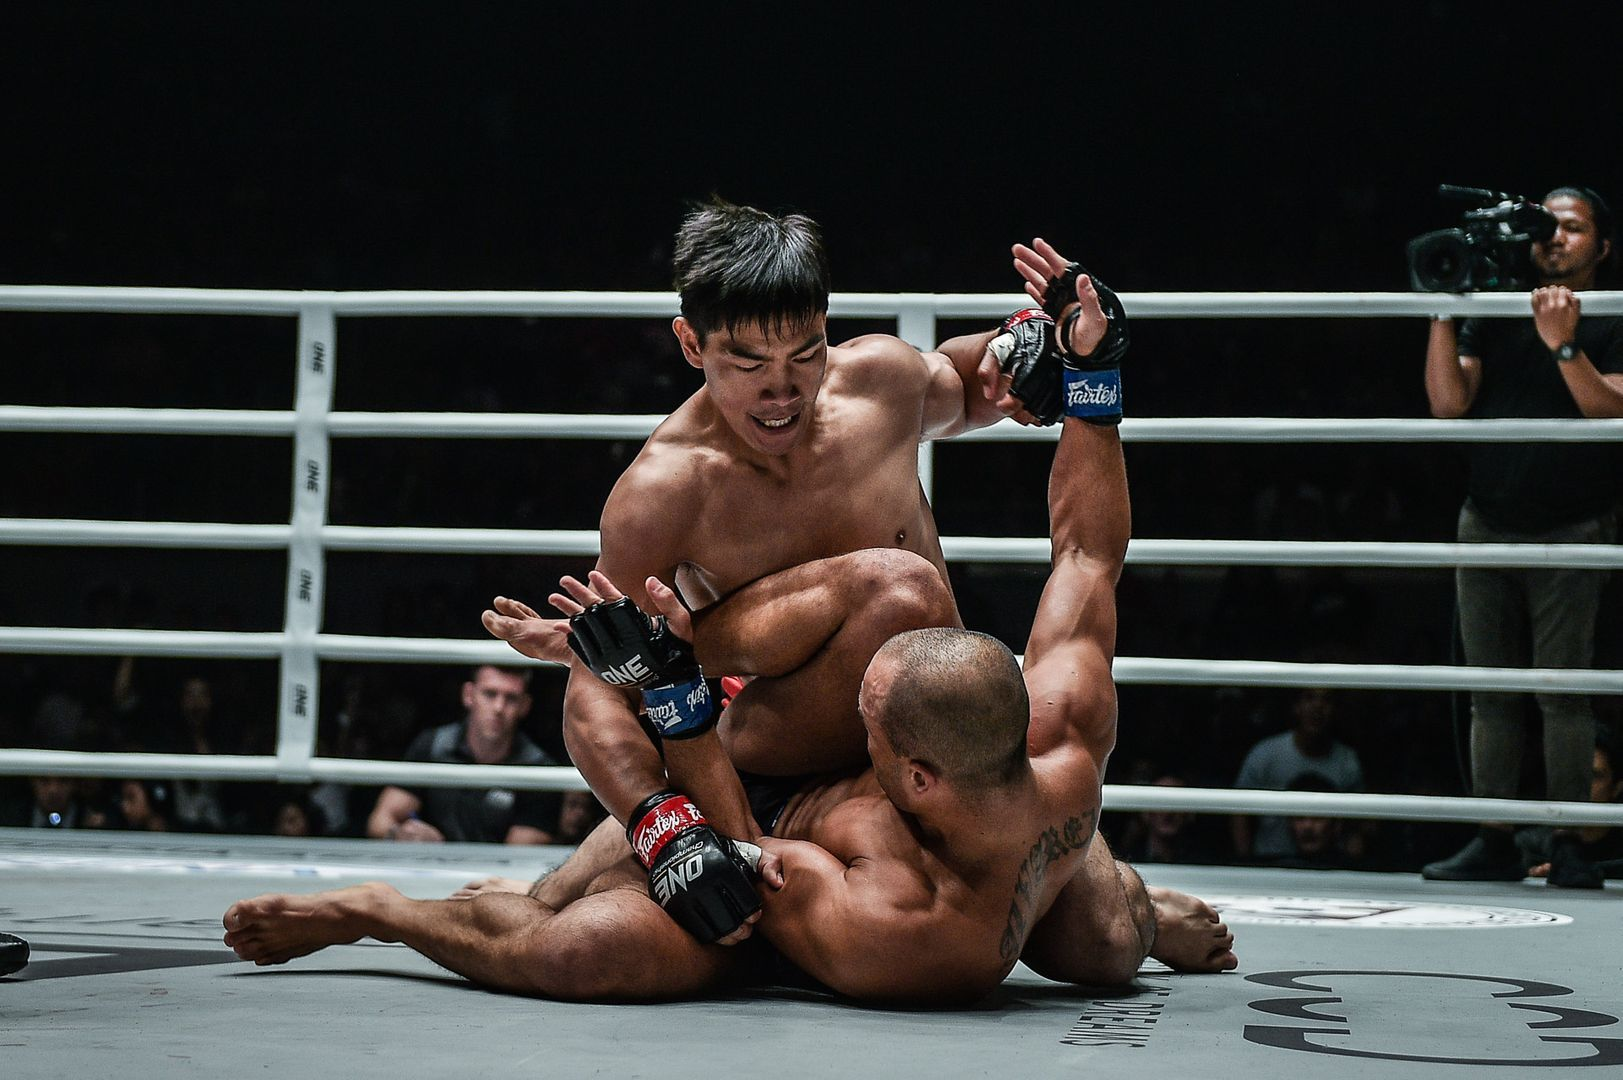 Filipino icon Eduard Folayang unleashes ground and pound on Eddie Alvarez in August 2019